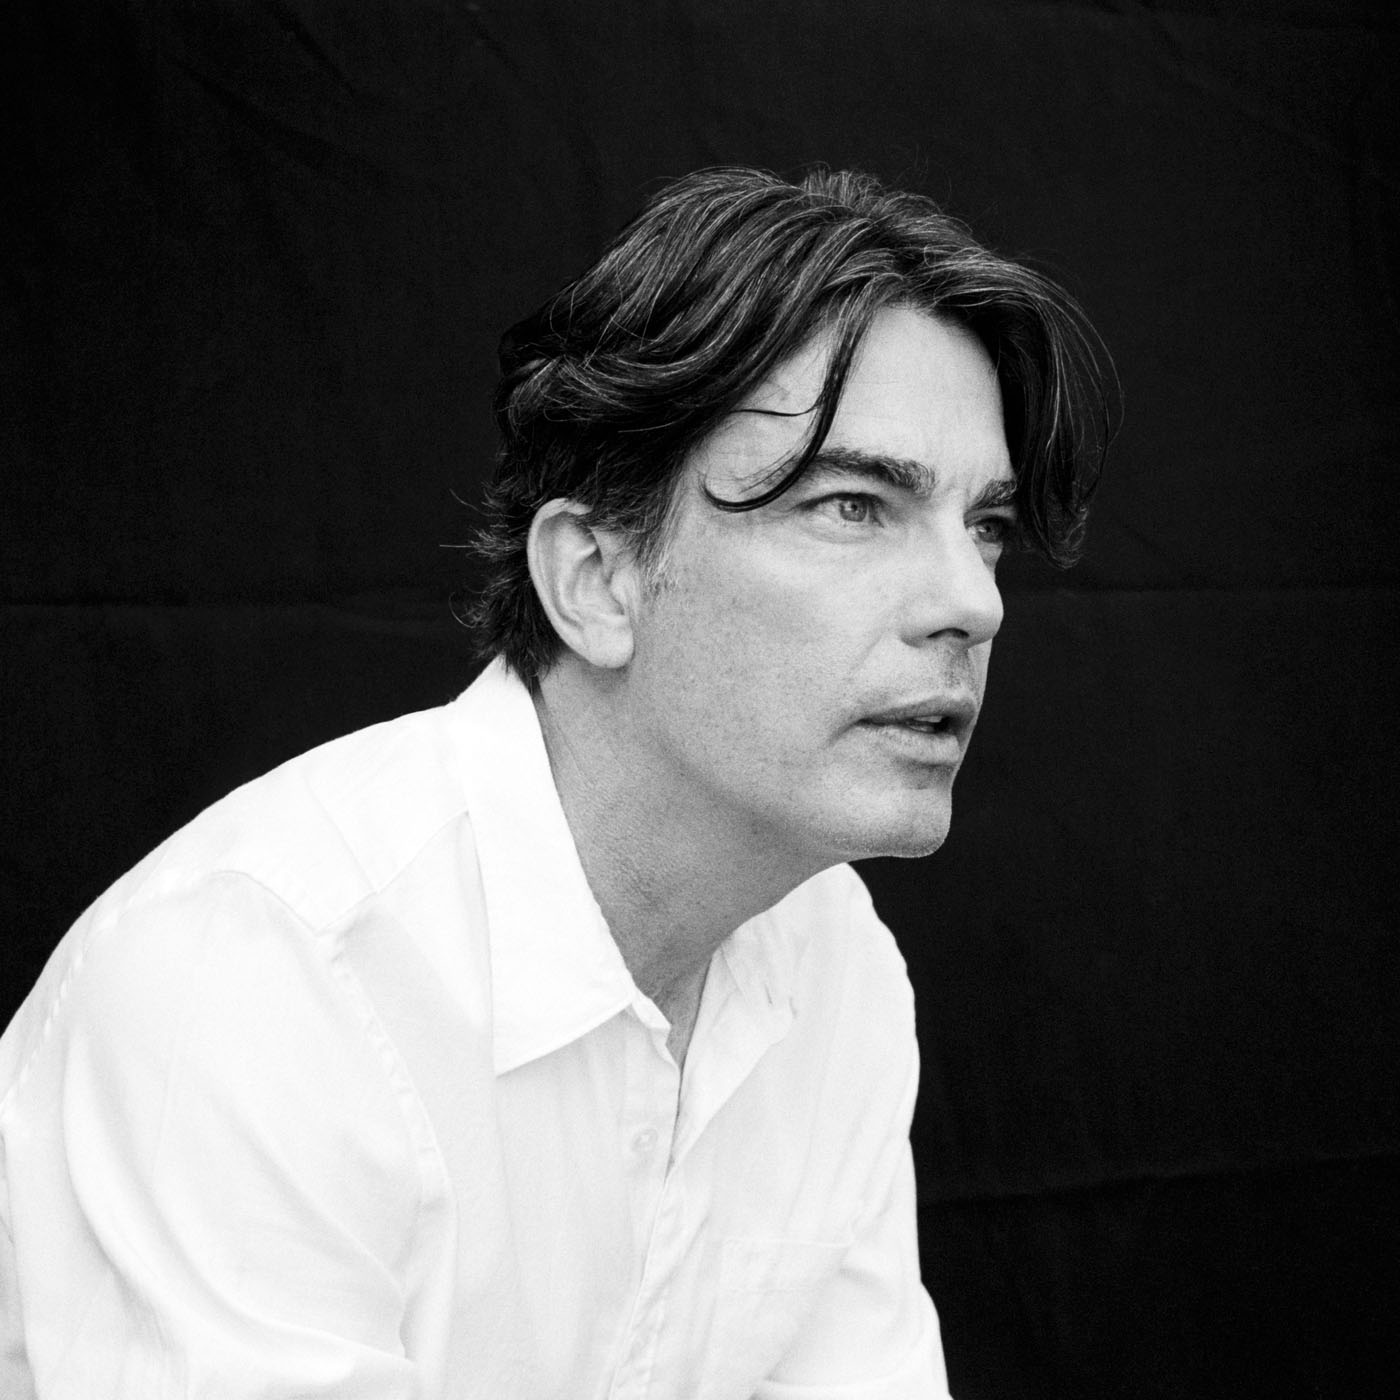 peter gallagher age